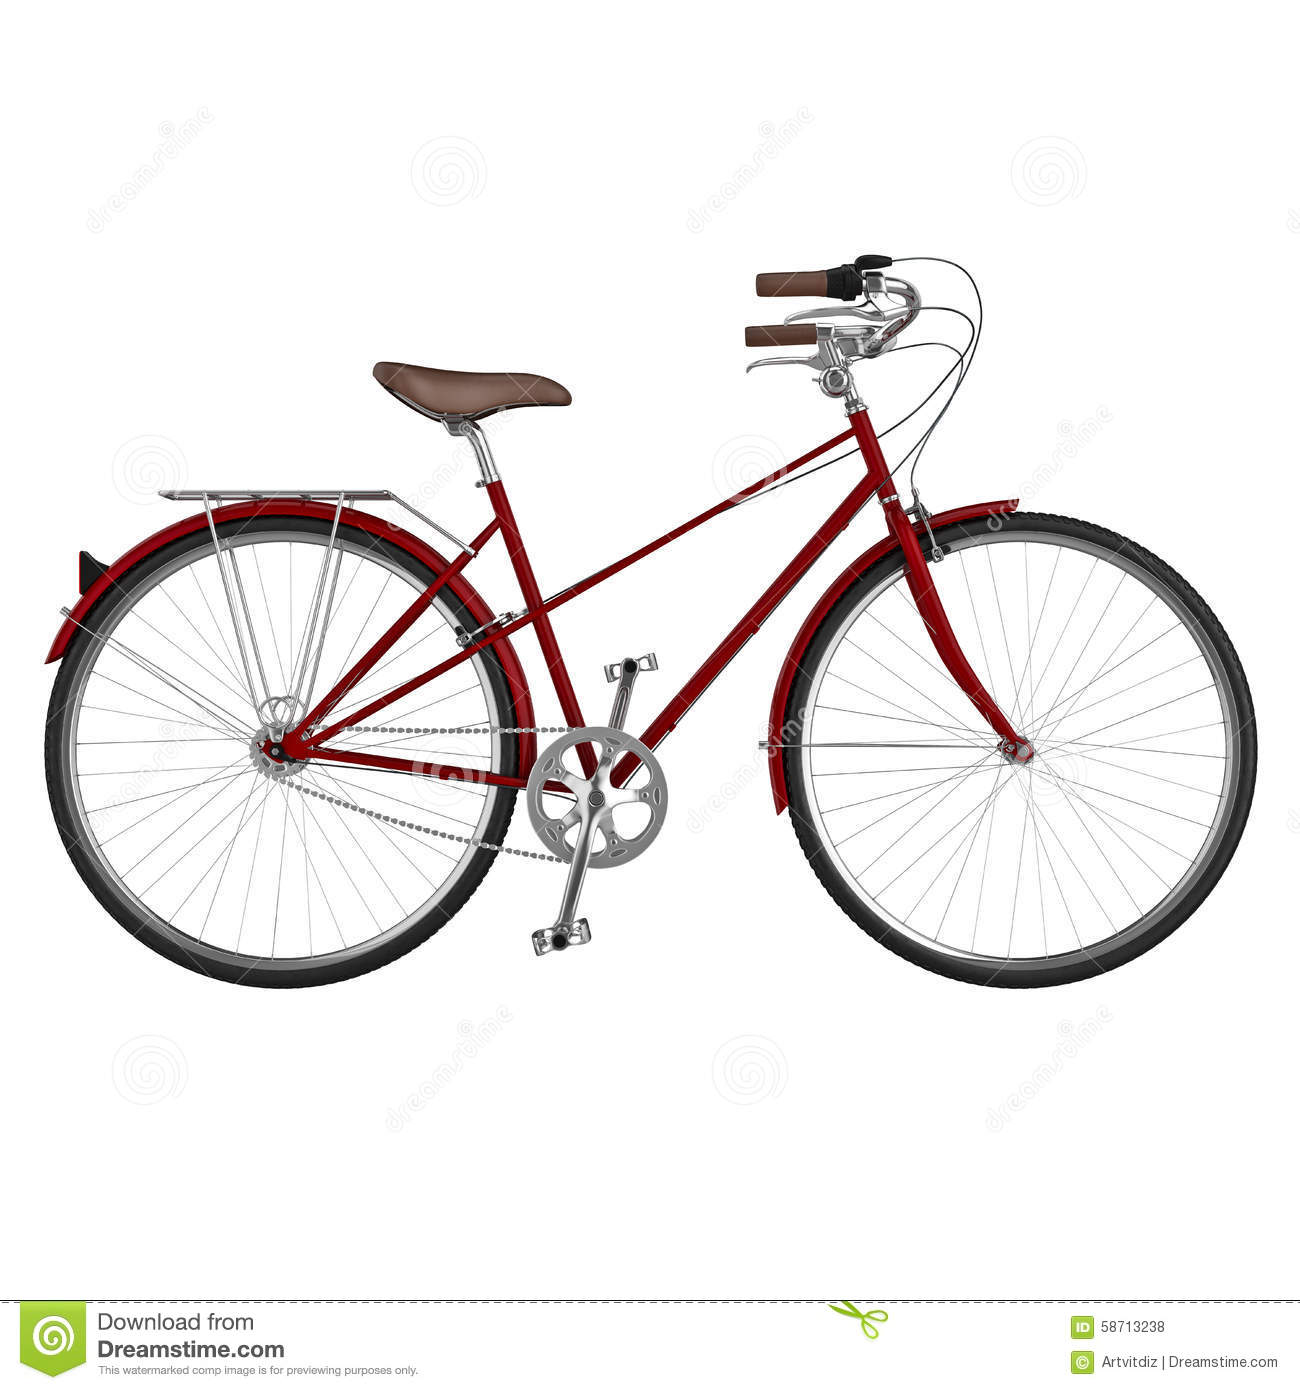 Vue de c t de bicyclette dessin 3d illustration stock - Bicyclette dessin ...